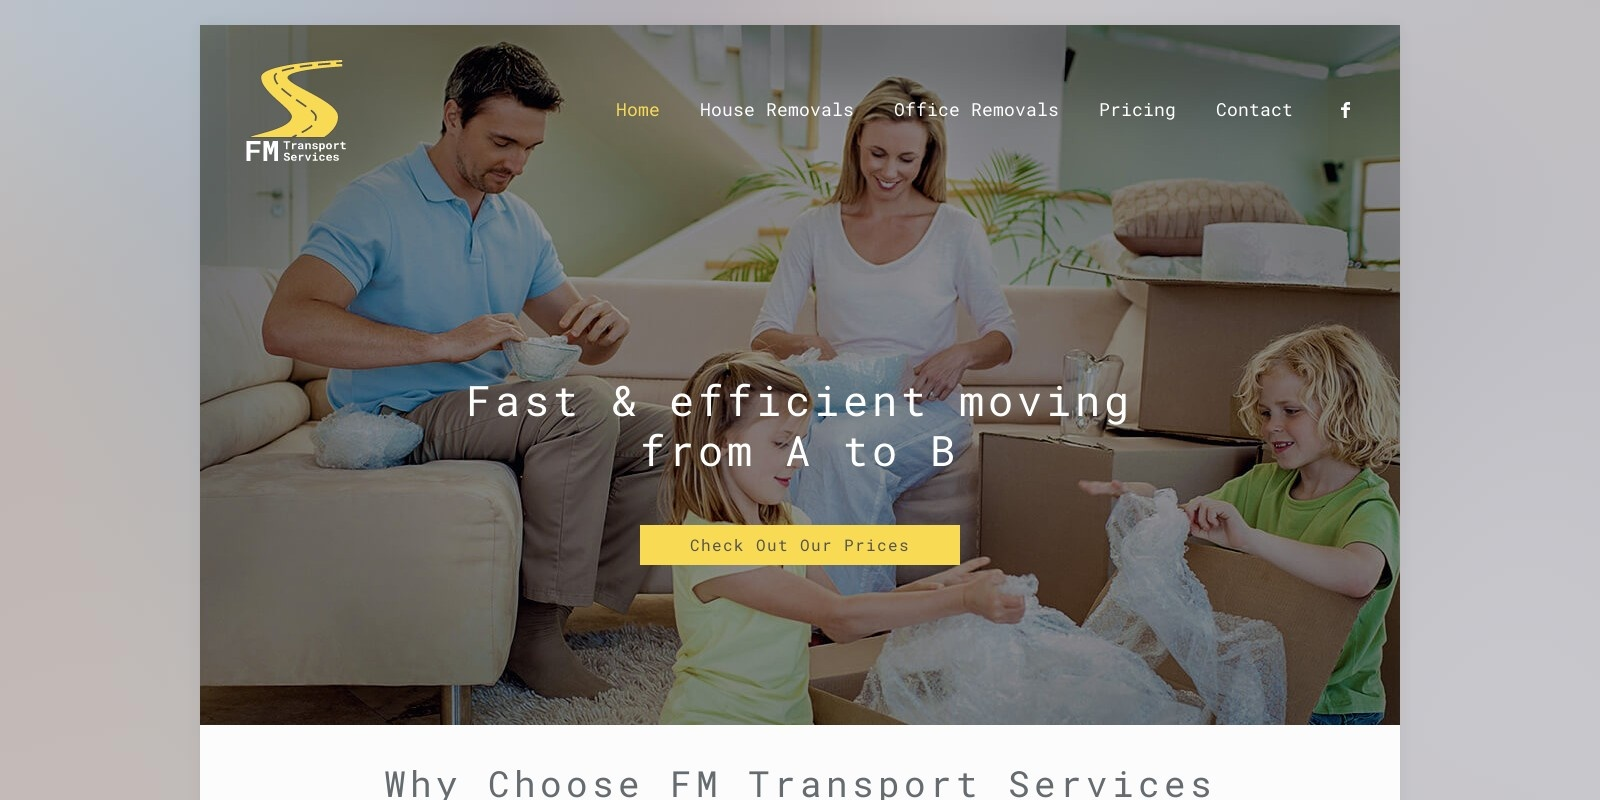 Preview of https://www.fmtransportservices.co.uk/